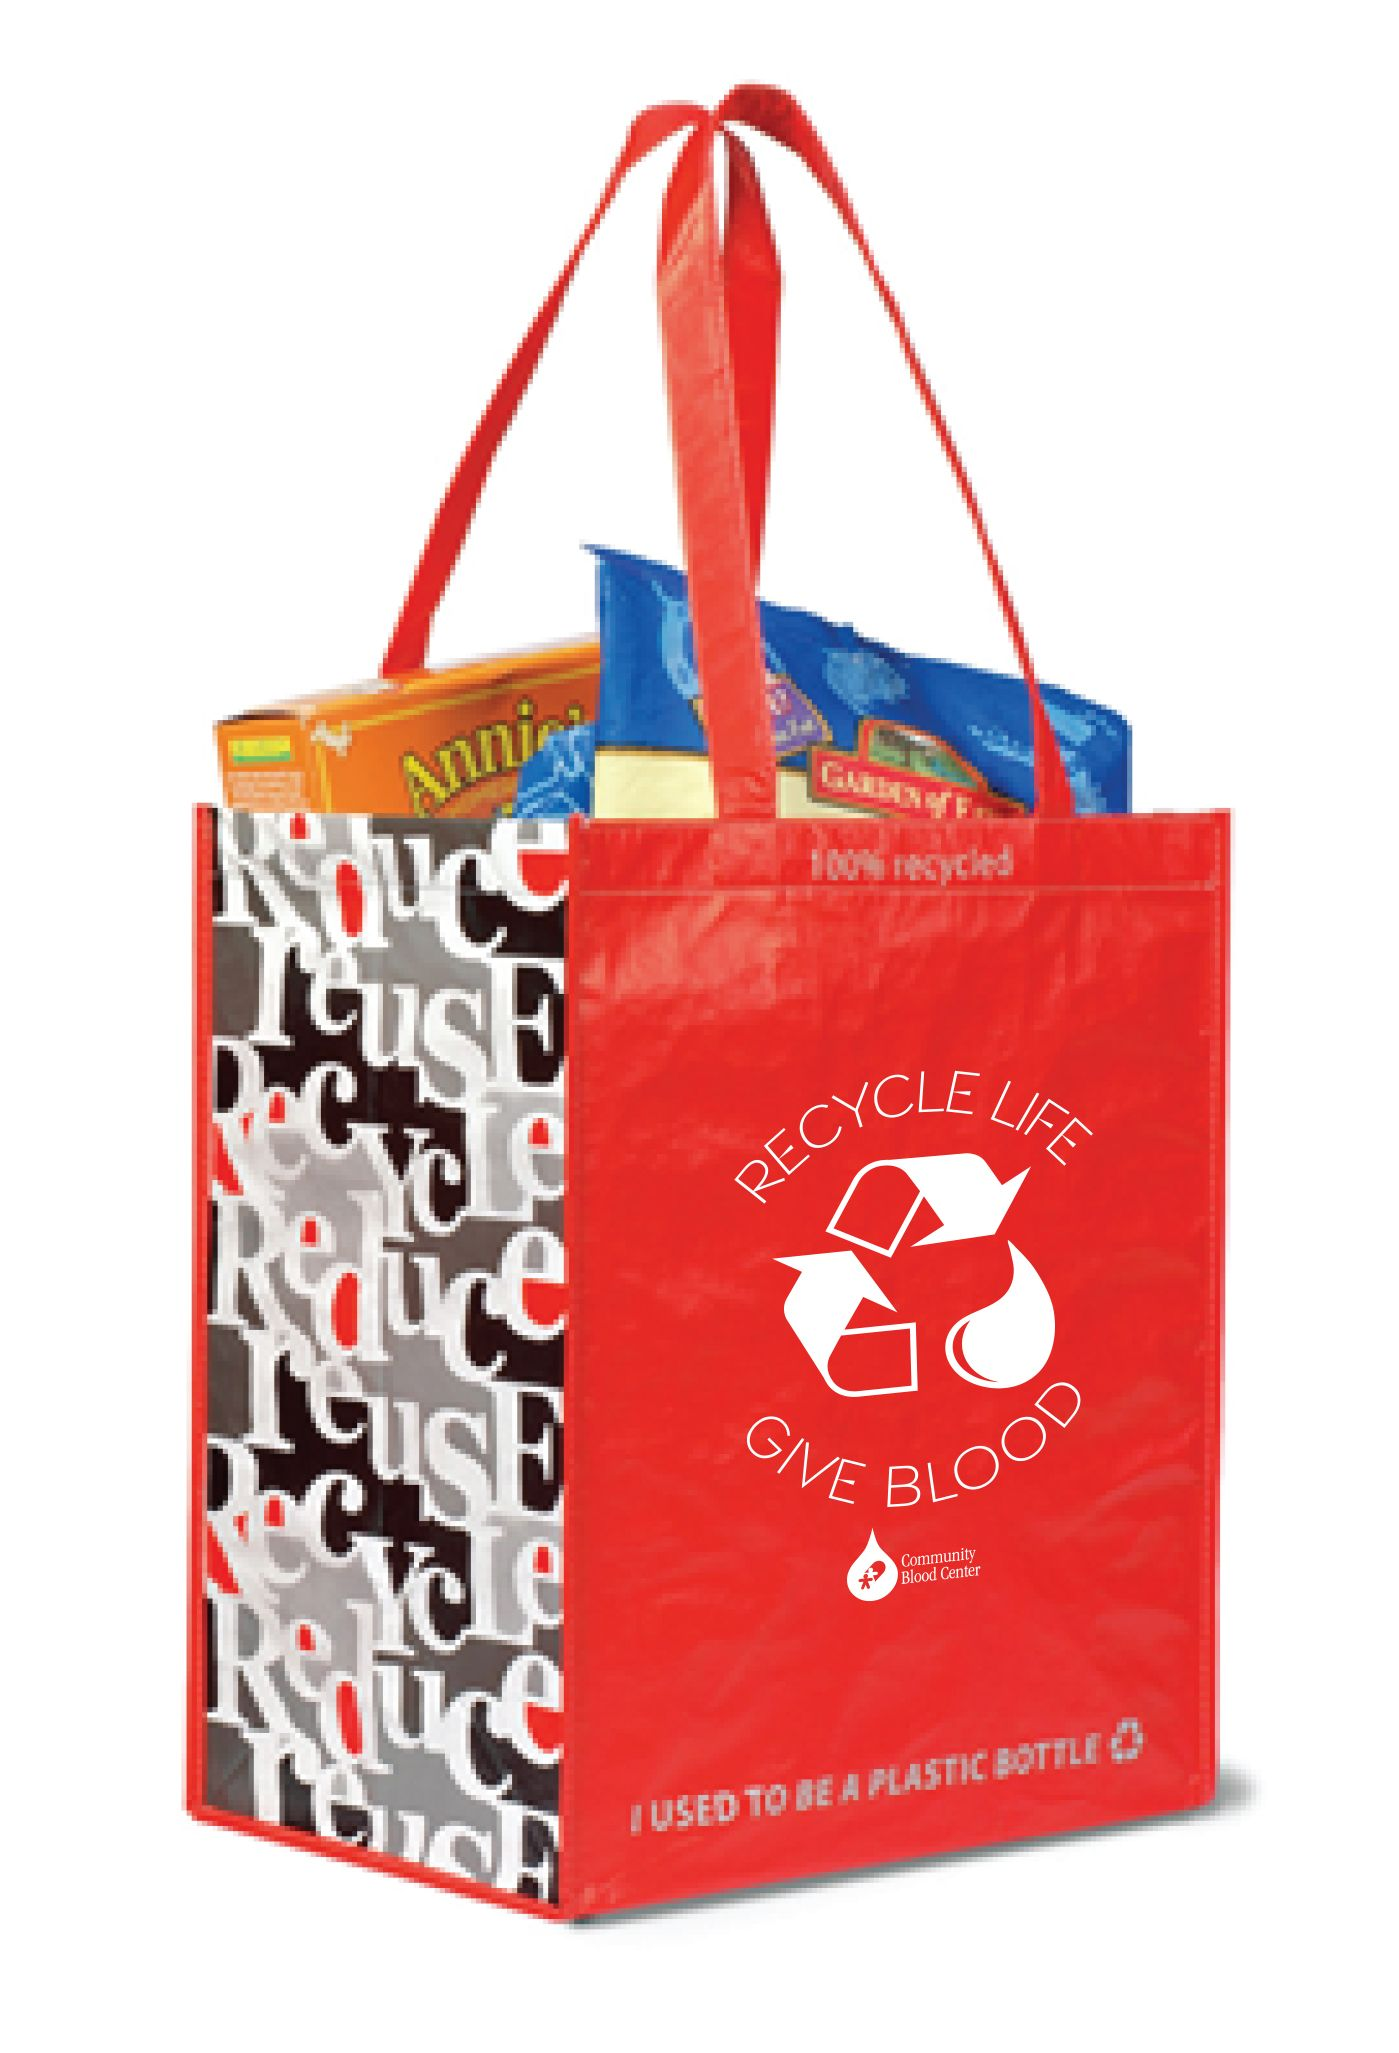 """Everyone who registers to donate April 6 - May 2 will receive a free """"Recycle Life - Give Blood"""" grocery tote which is a nod to """"Earth Day 2015"""" celebrated April 22. The bright red """"Recycle - Give Blood"""" grocery tote bag is made completely from recycled materials."""